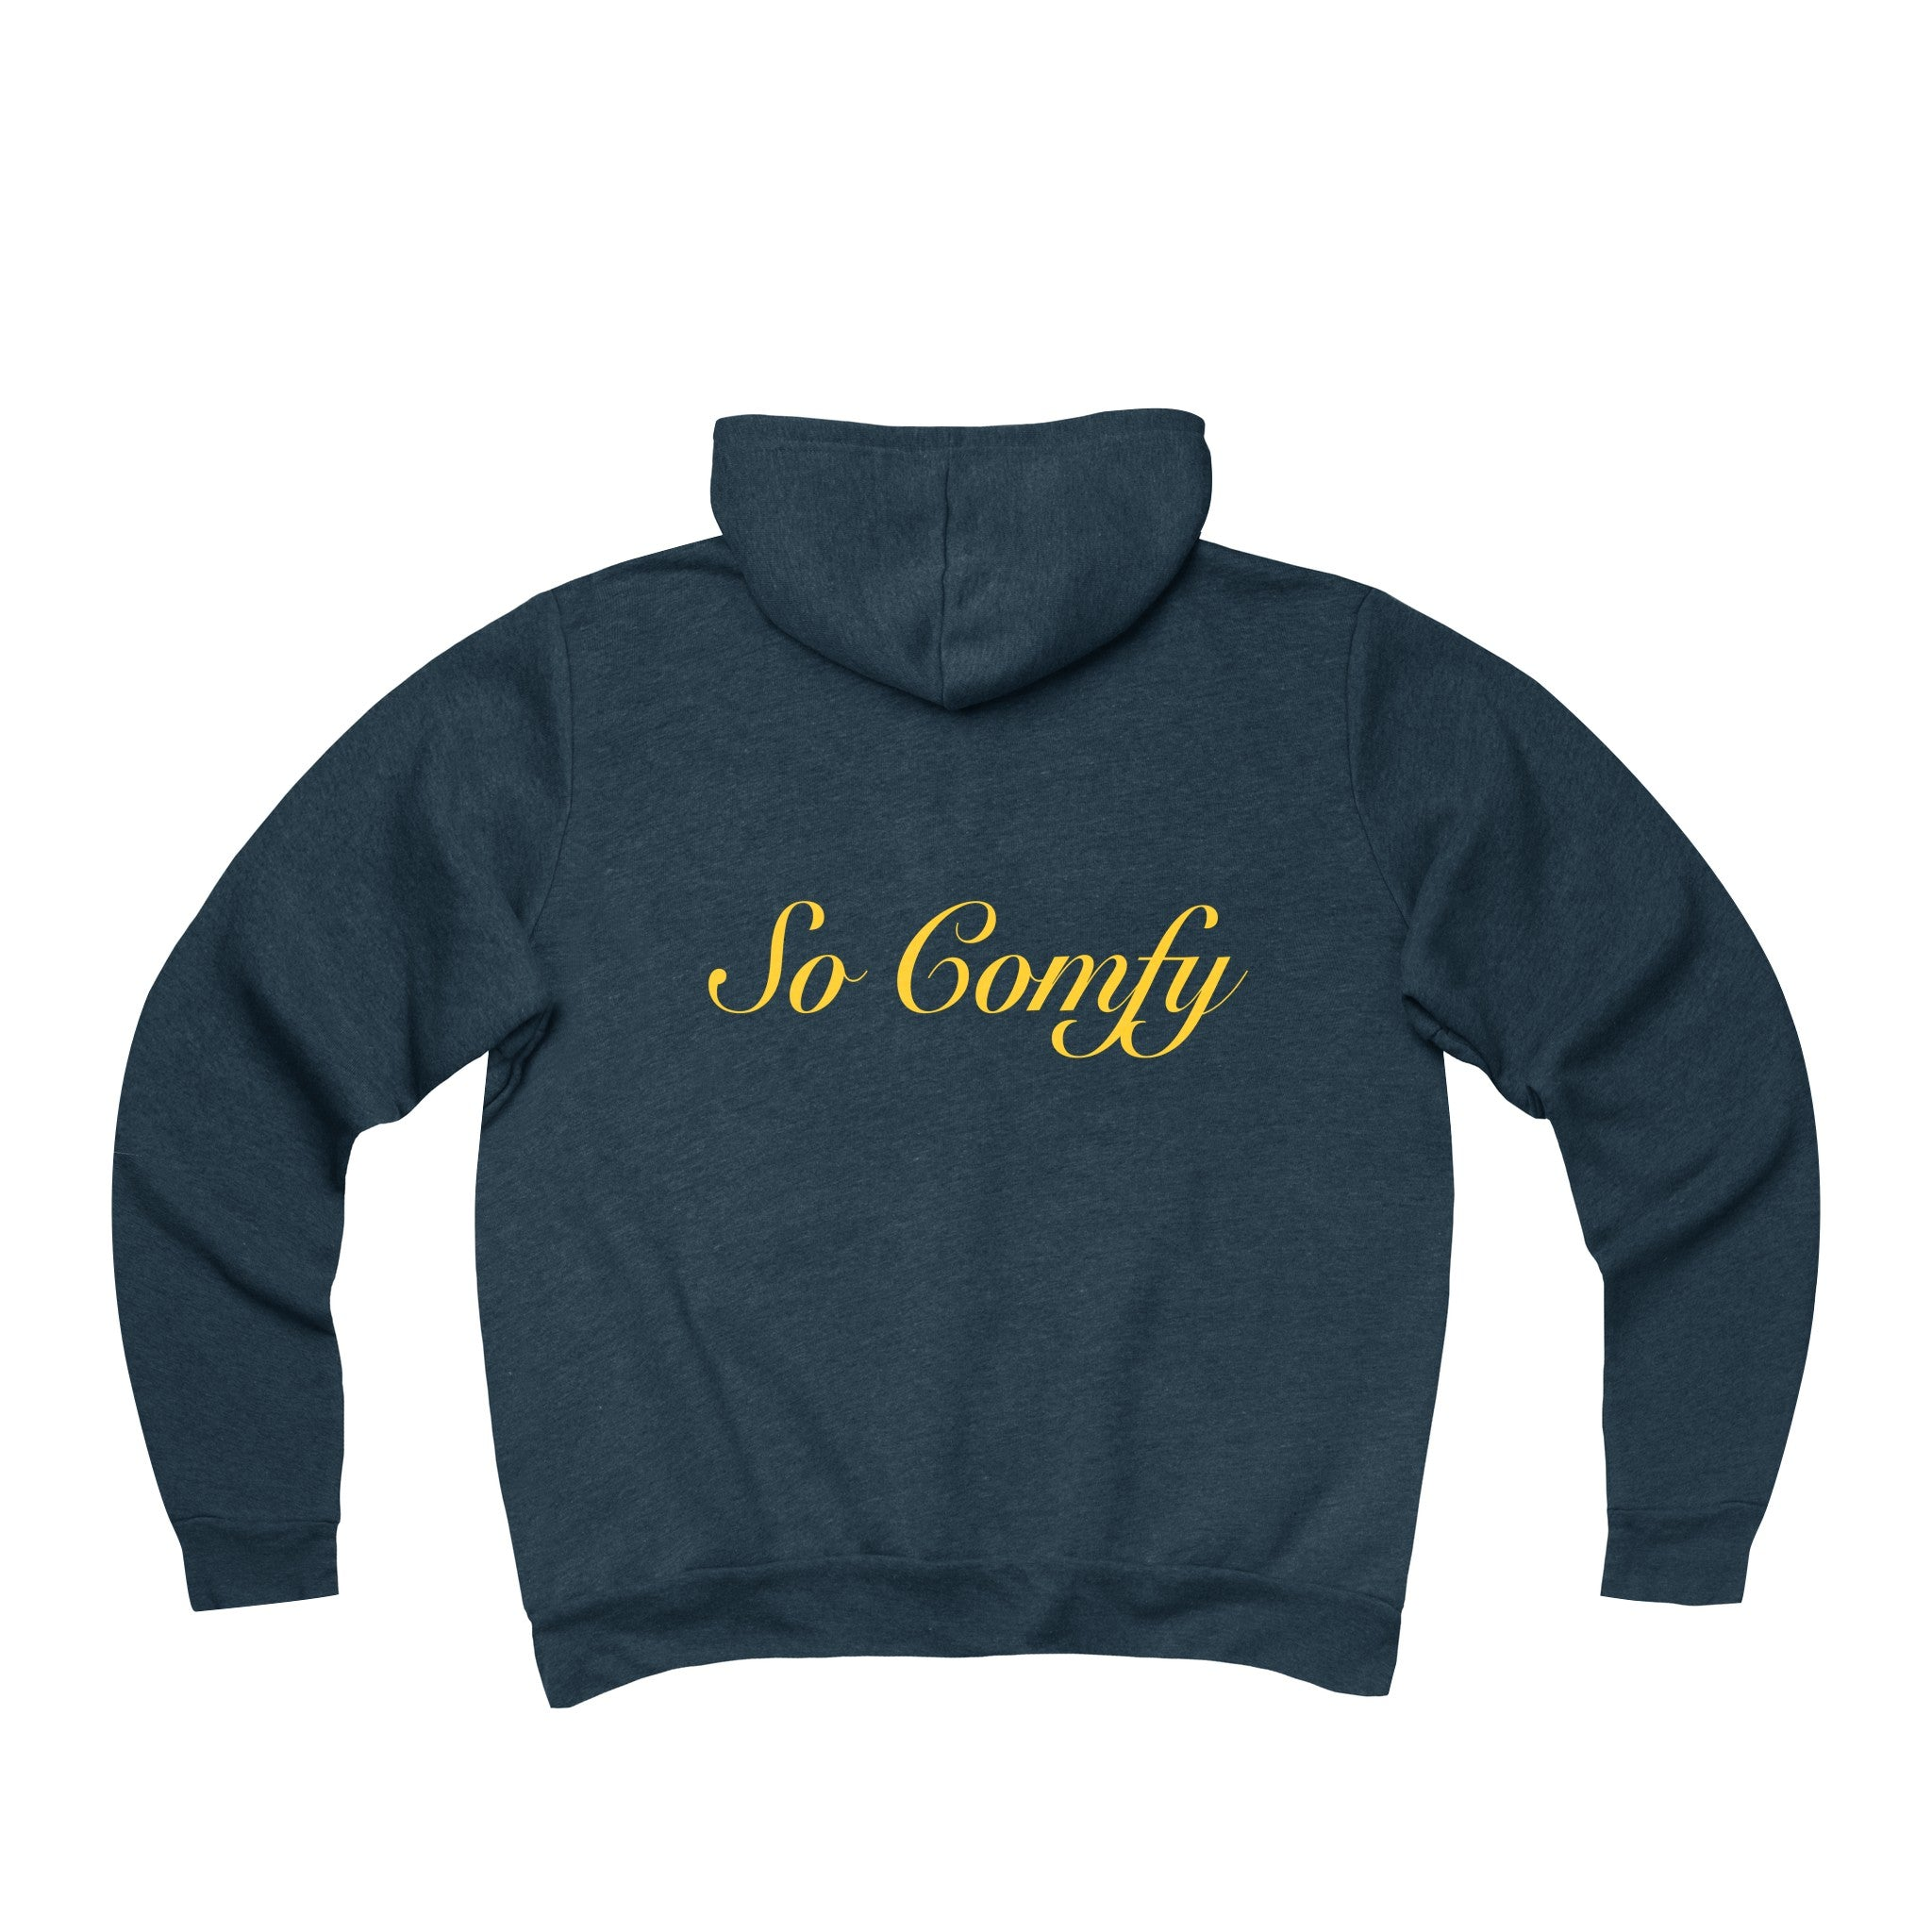 Super Sampa Comfy Hoodie - The Comfort Crusade Shopping Lounge